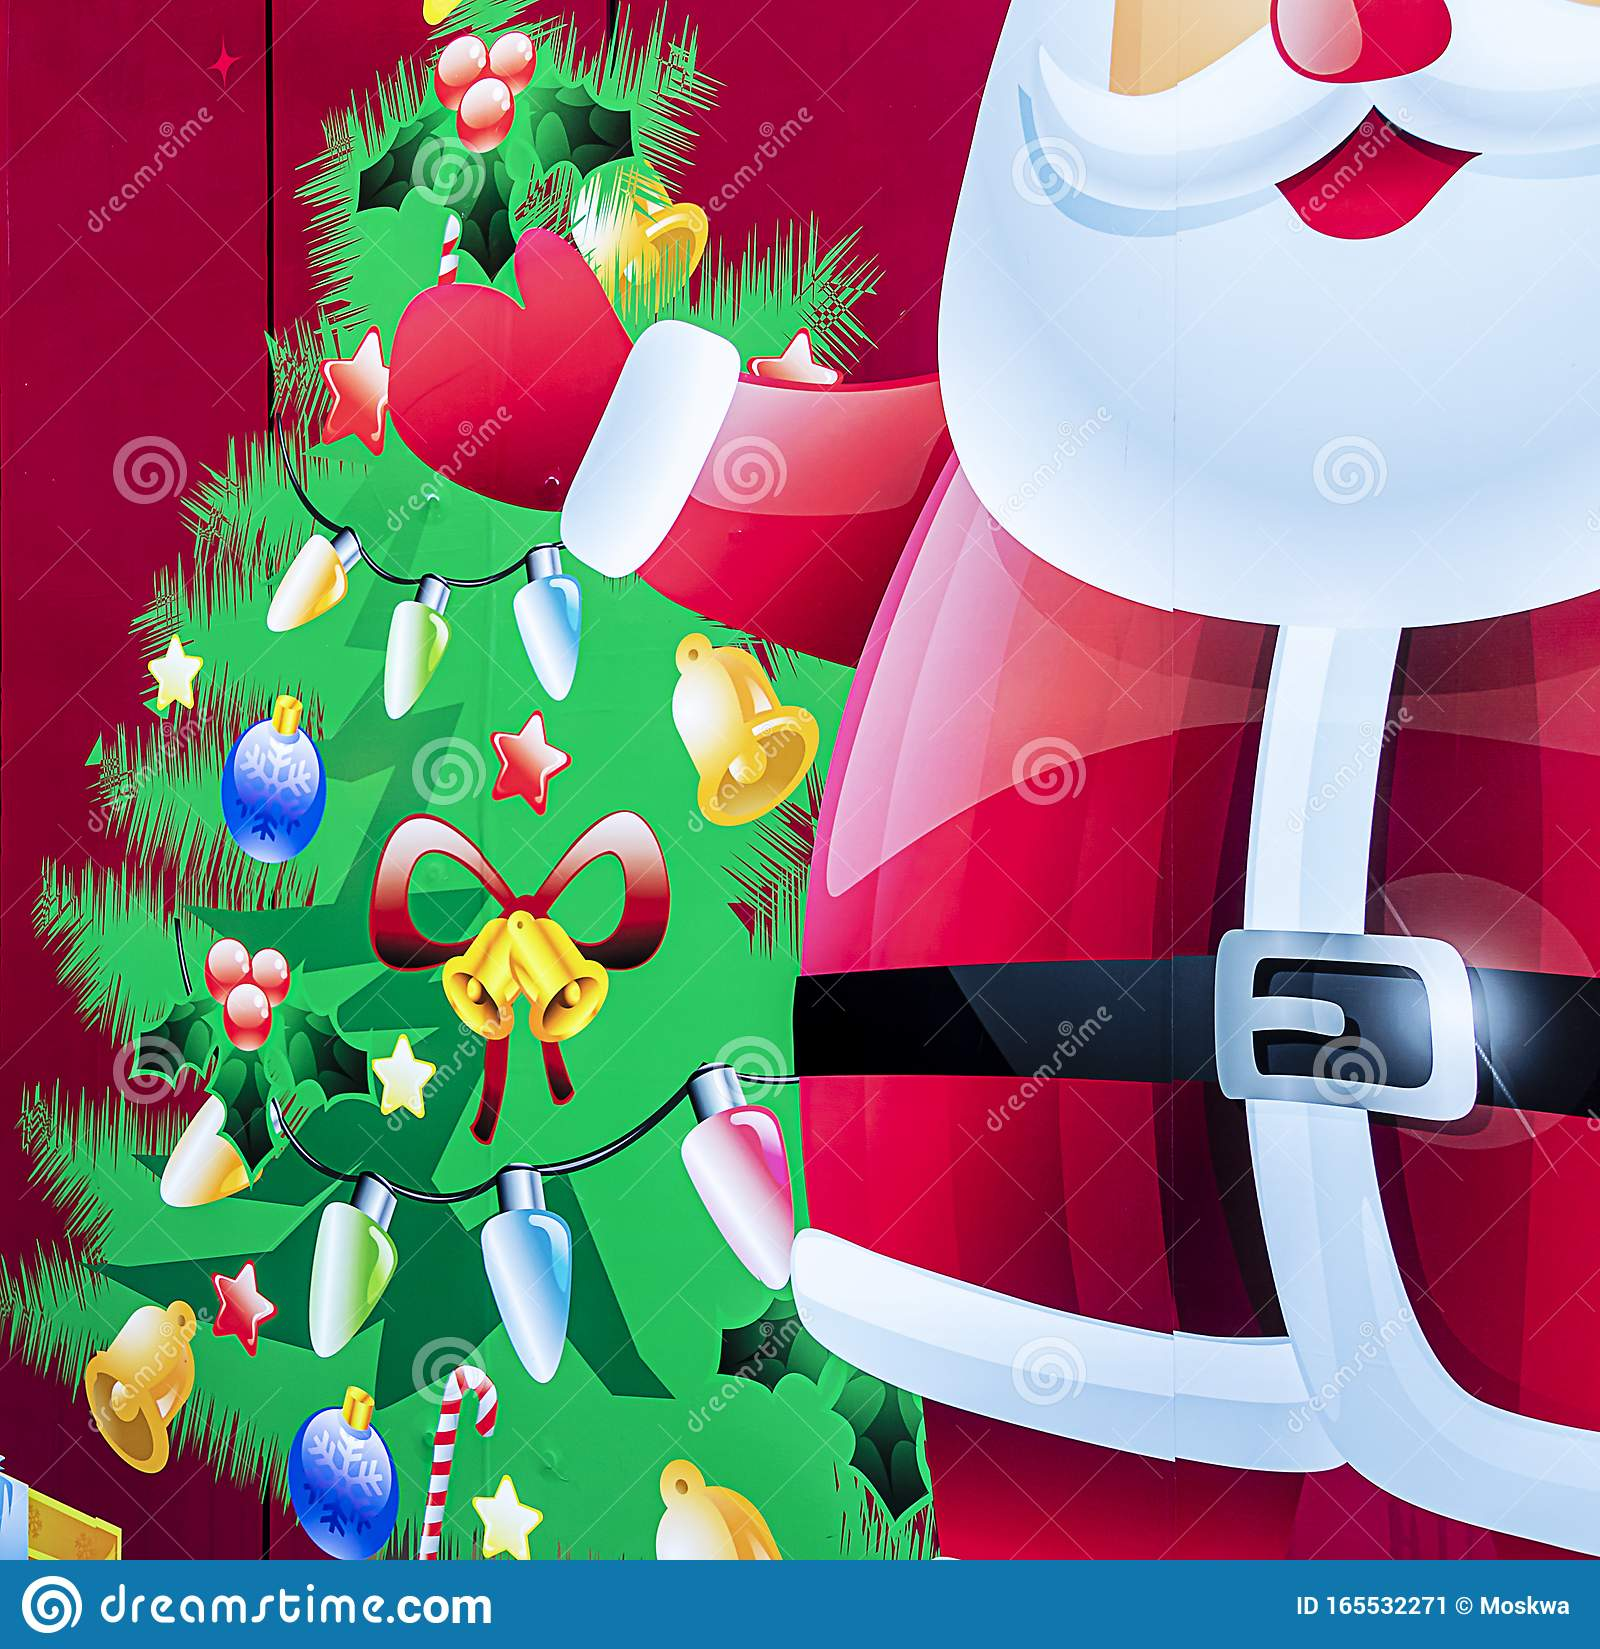 Colorful Christmas Background With Santa Claus And Christmas Tree Stock Illustration Illustration Of Painted Decoration 165532271